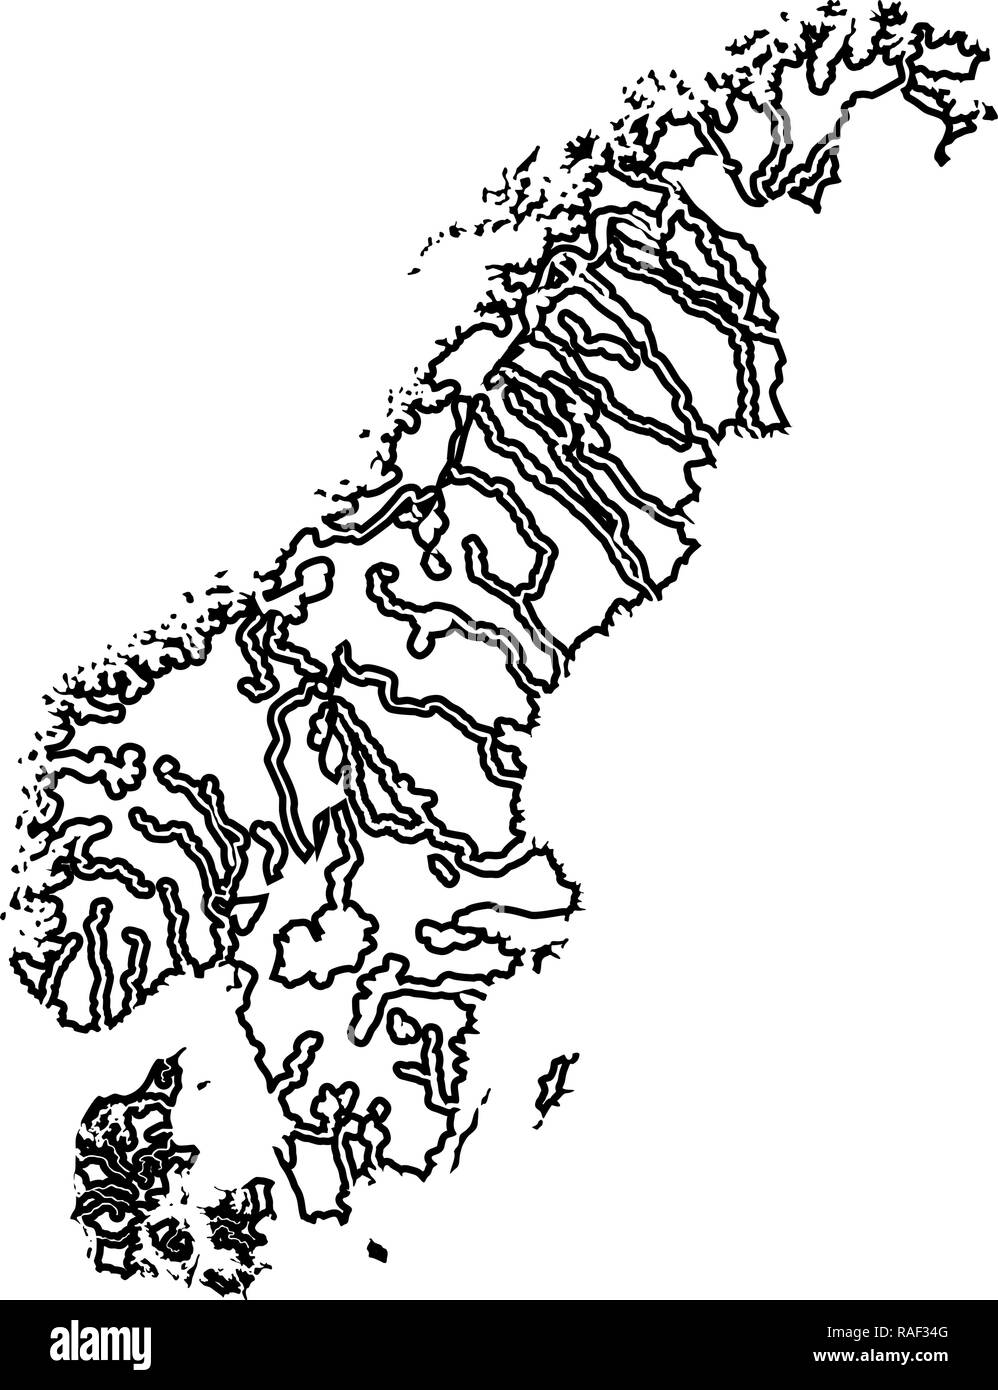 Map of Scandinavia icon black color vector I flat style simple image - Stock Image